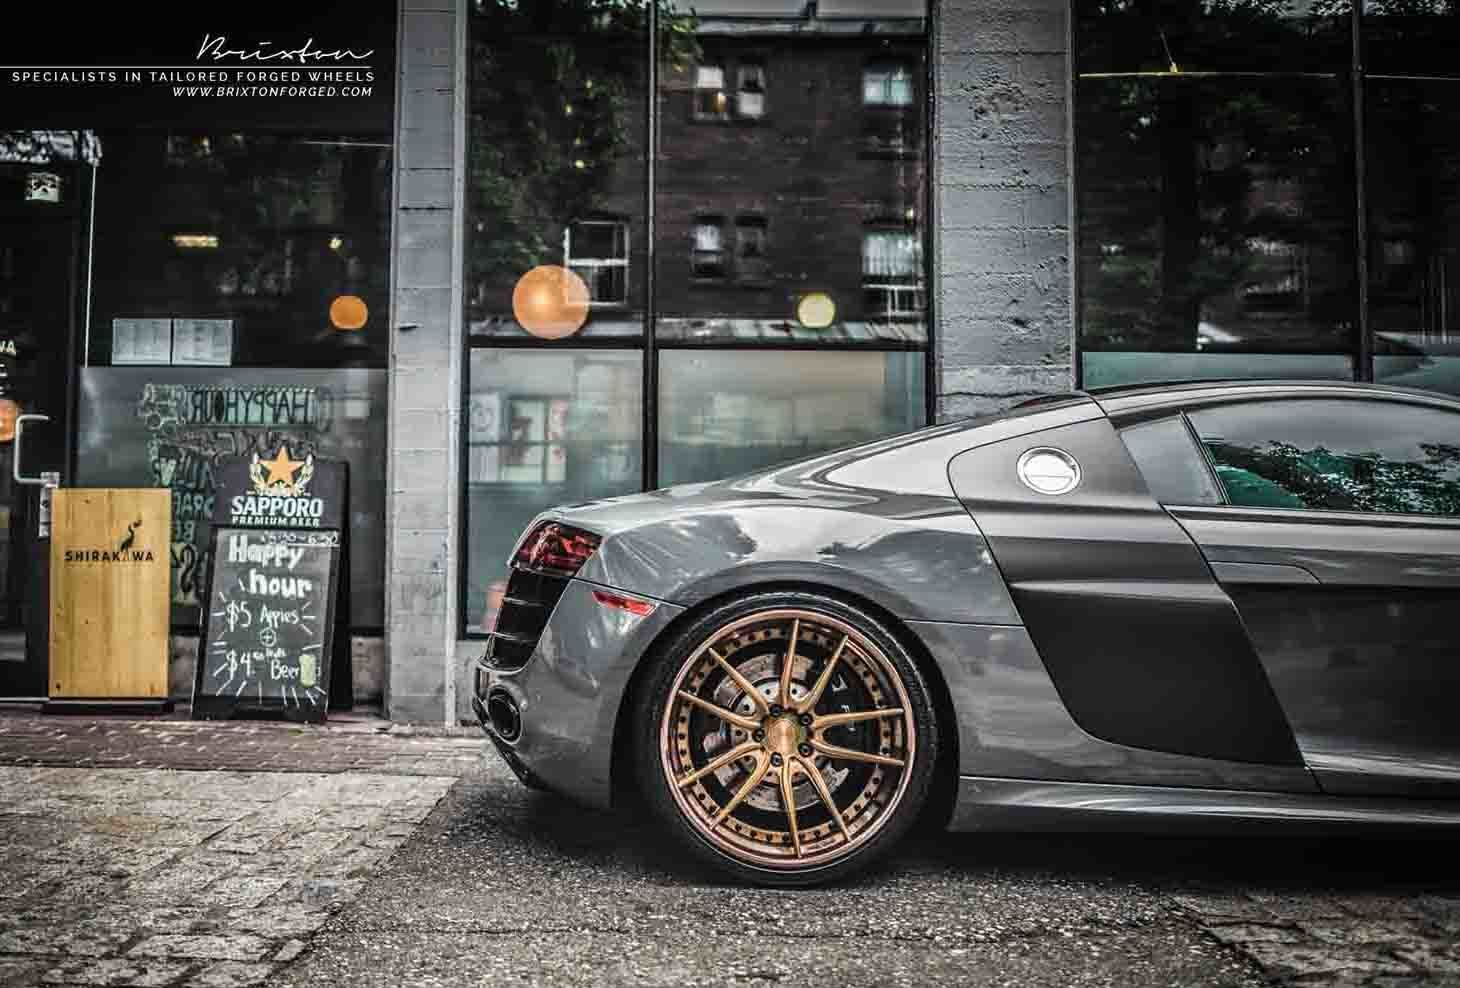 images-products-1-2262-232974550-brixton-forged-m53-targa-series-audi-r8-v10-grey-20-inch-super-concave-3-piece-brushed-bronze-03.jpg